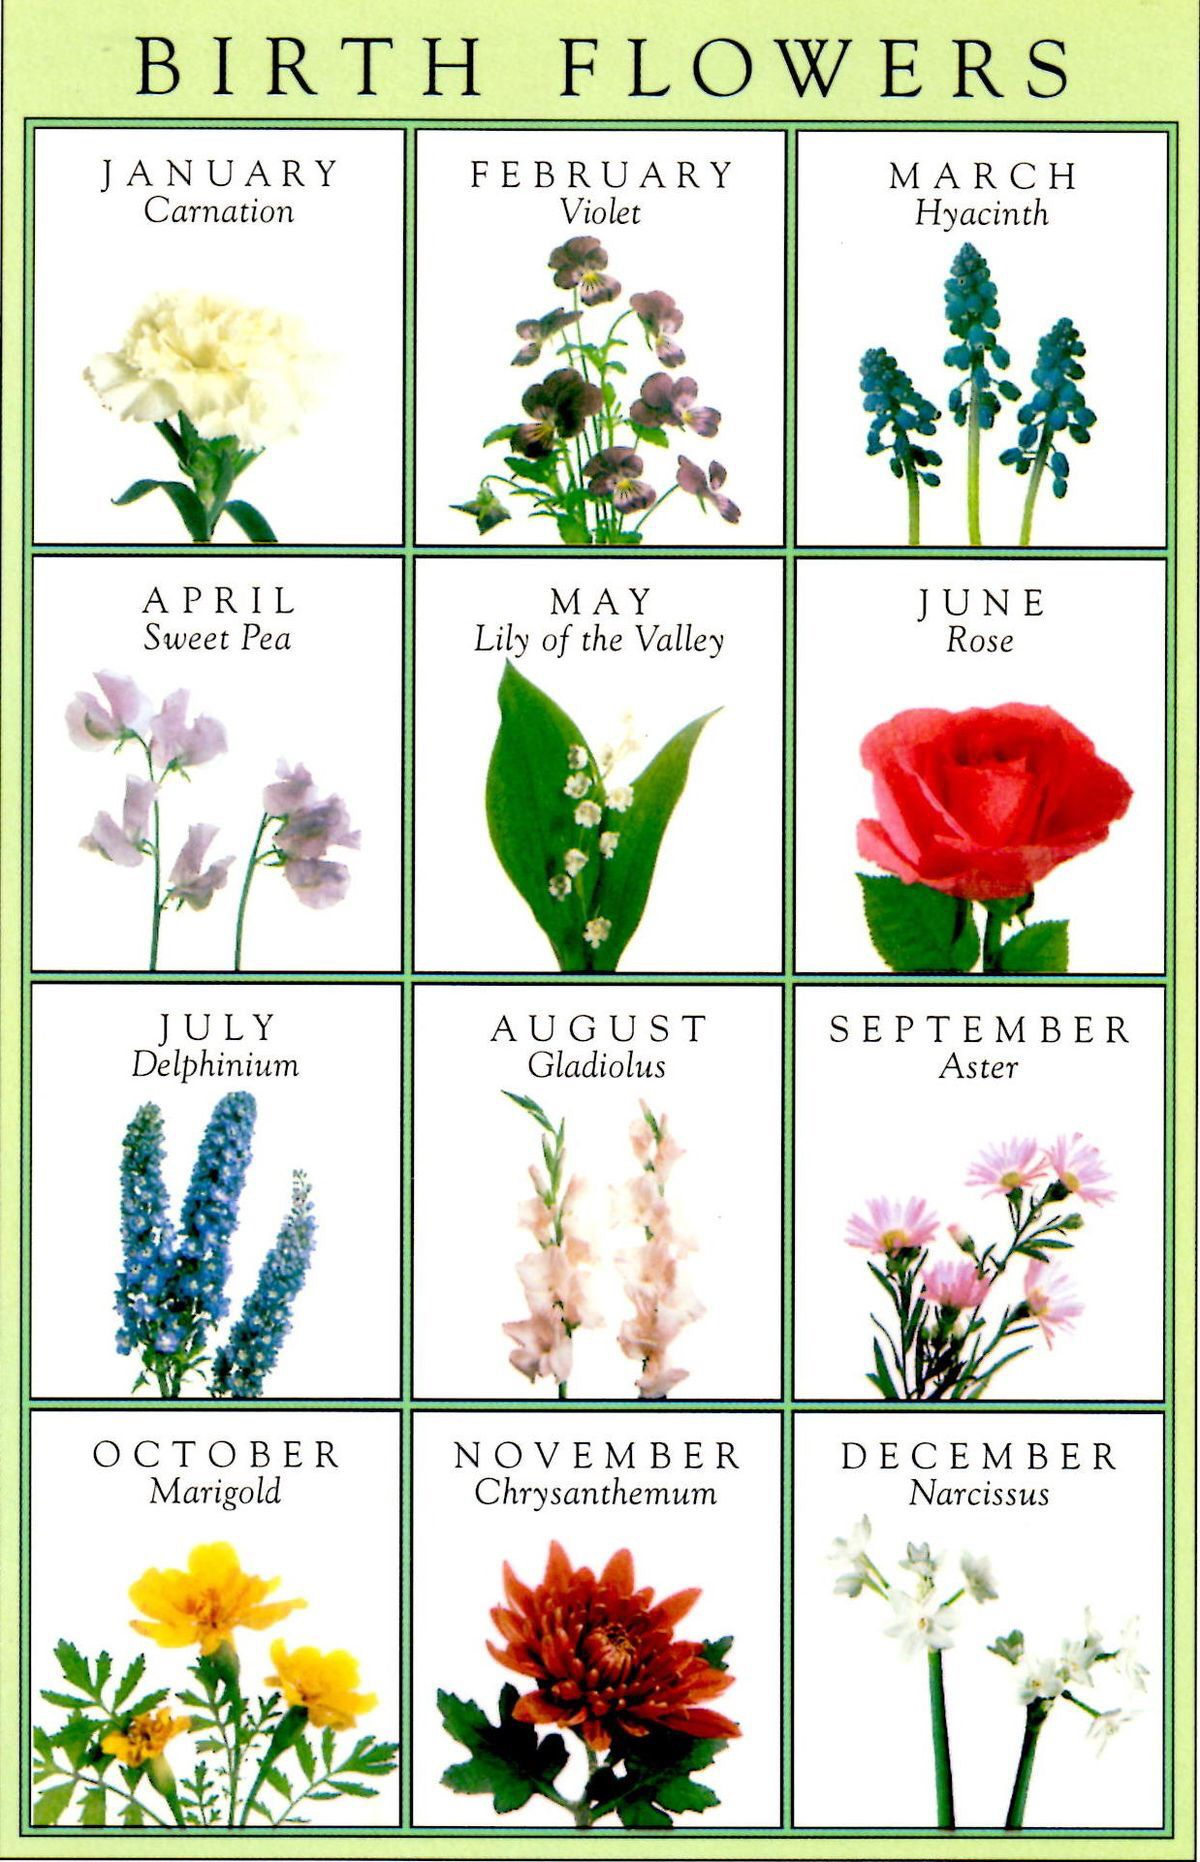 Birthday flowers by month find birthdays birthdays and flower may lily of the valley dhlflorist Gallery